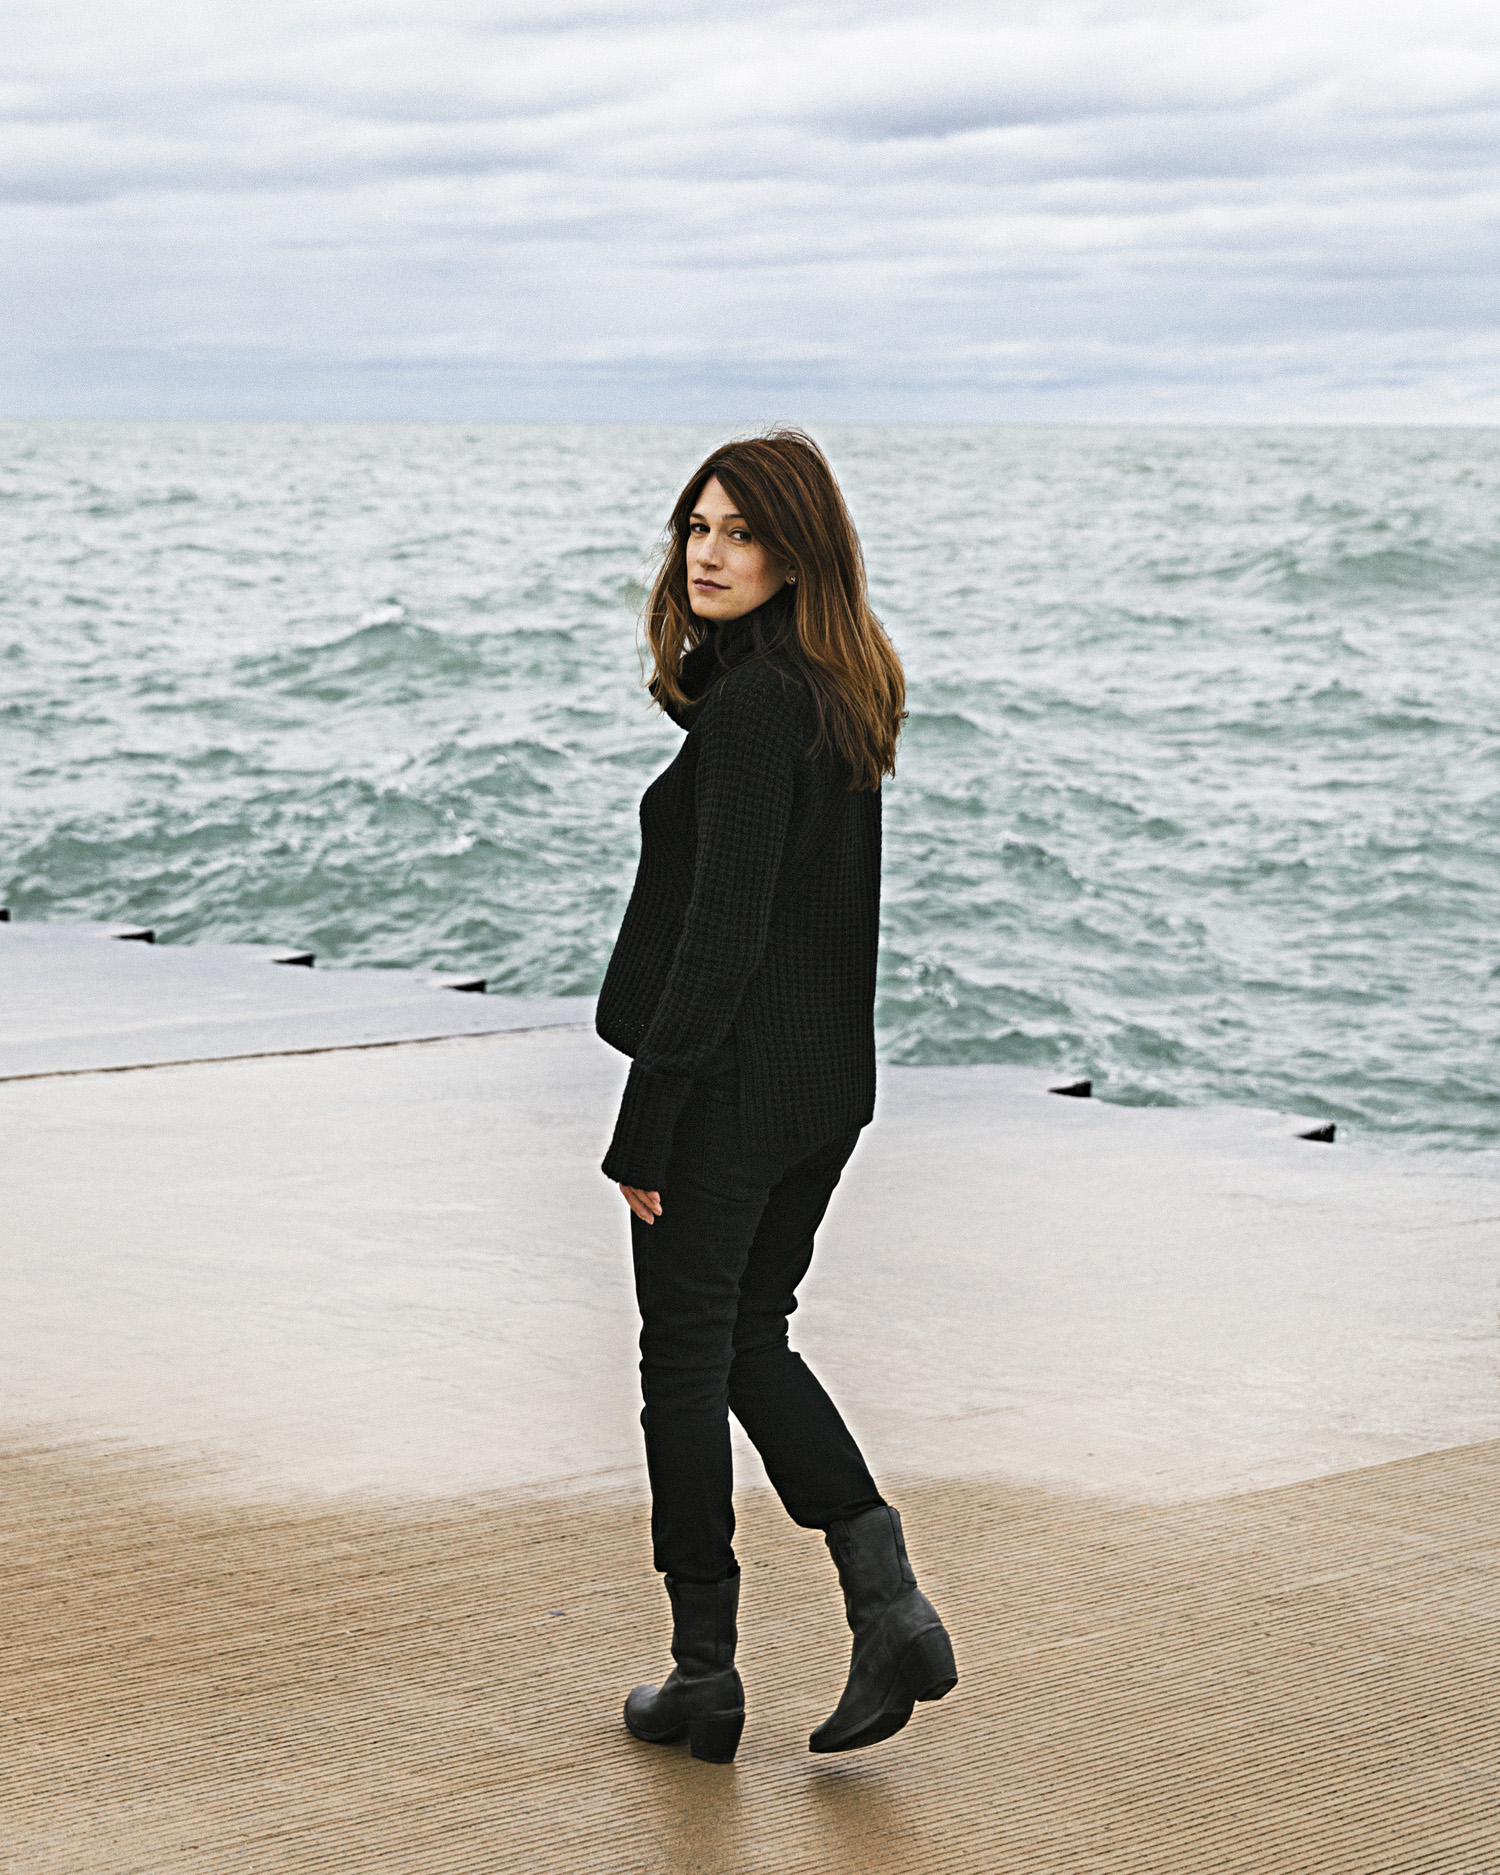 Gone Girl author Flynn on the Lake Michigan waterfront near Chicago's Lincoln Park